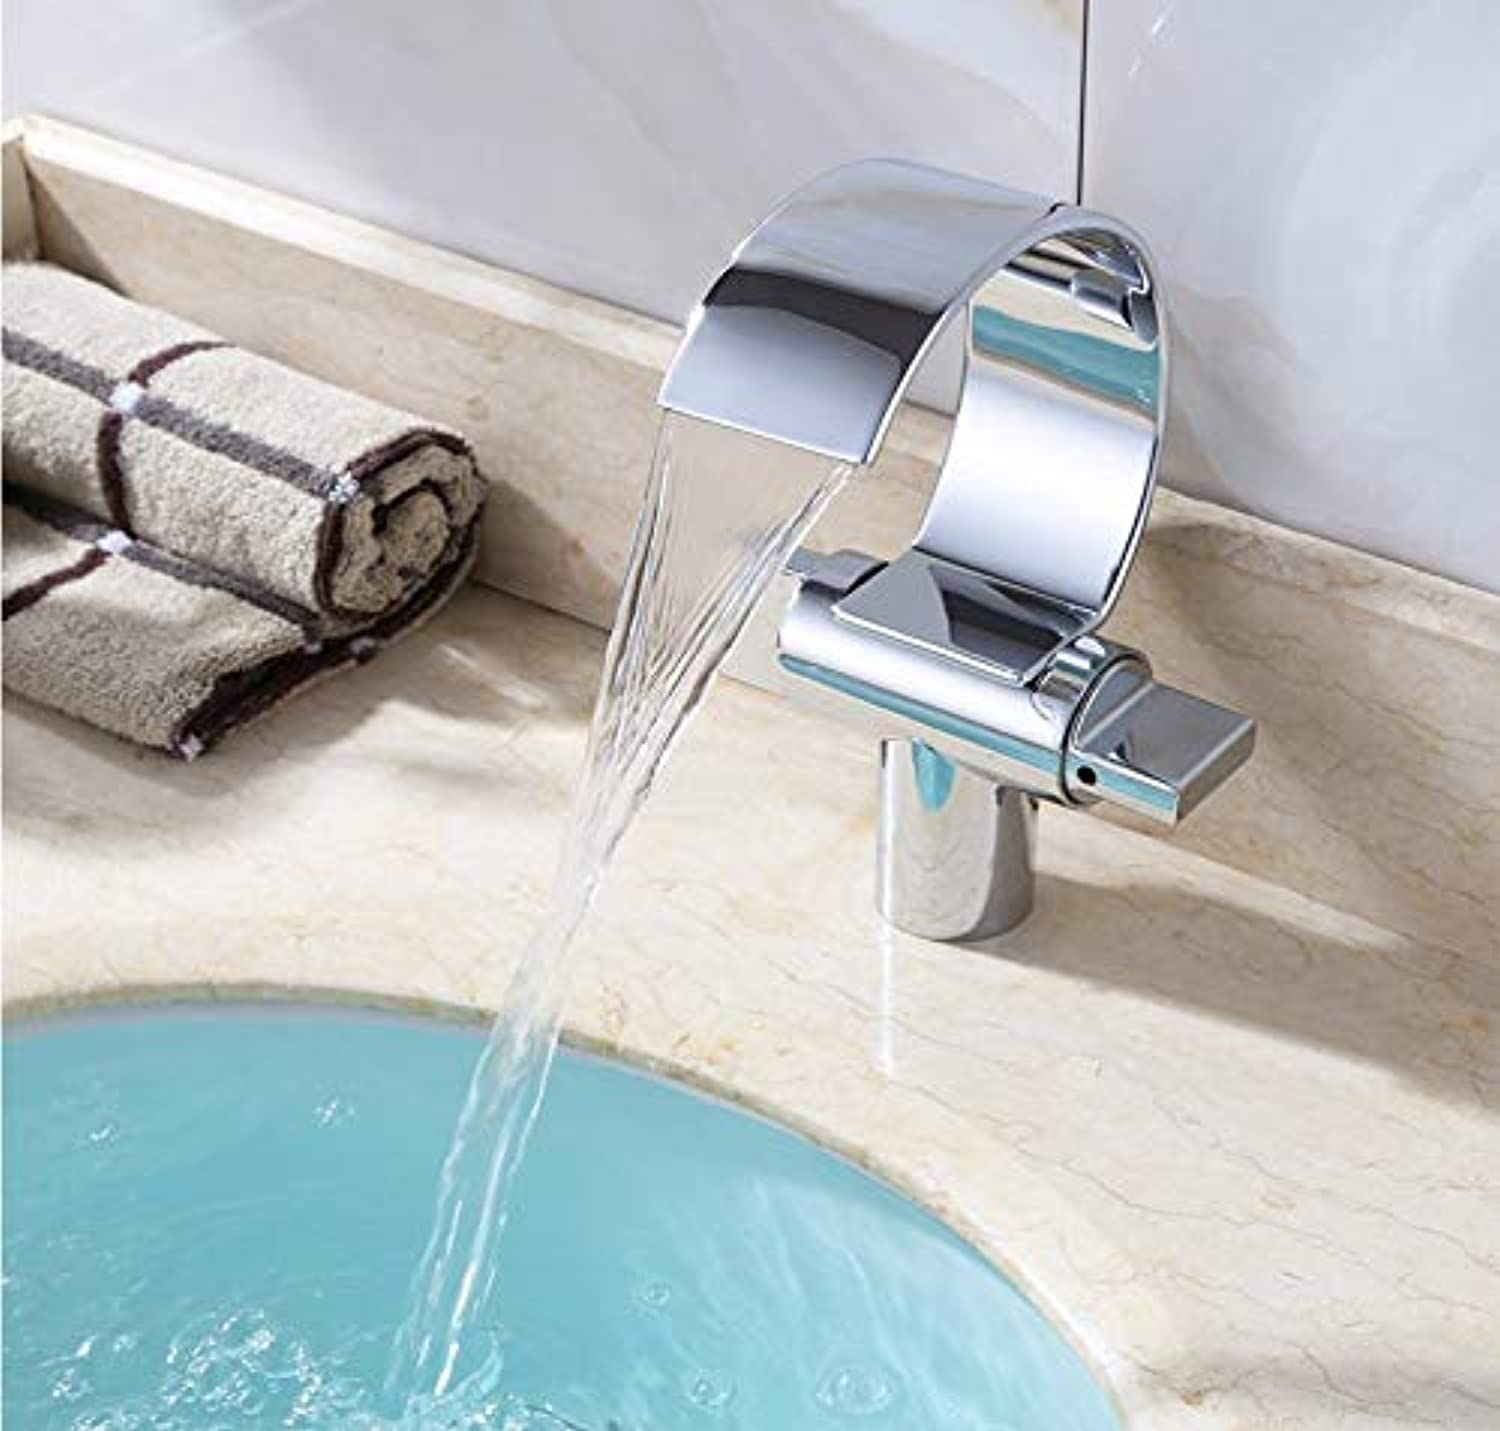 ROKTONG Unique Modern Flat Mouth Waterfall Bathroom Mixer Tap Vessel Sink widespread Faucets Semi-moon Chrome Finish Bath tub Basin Vanity faucets Two handles Brass Lavatory faucets